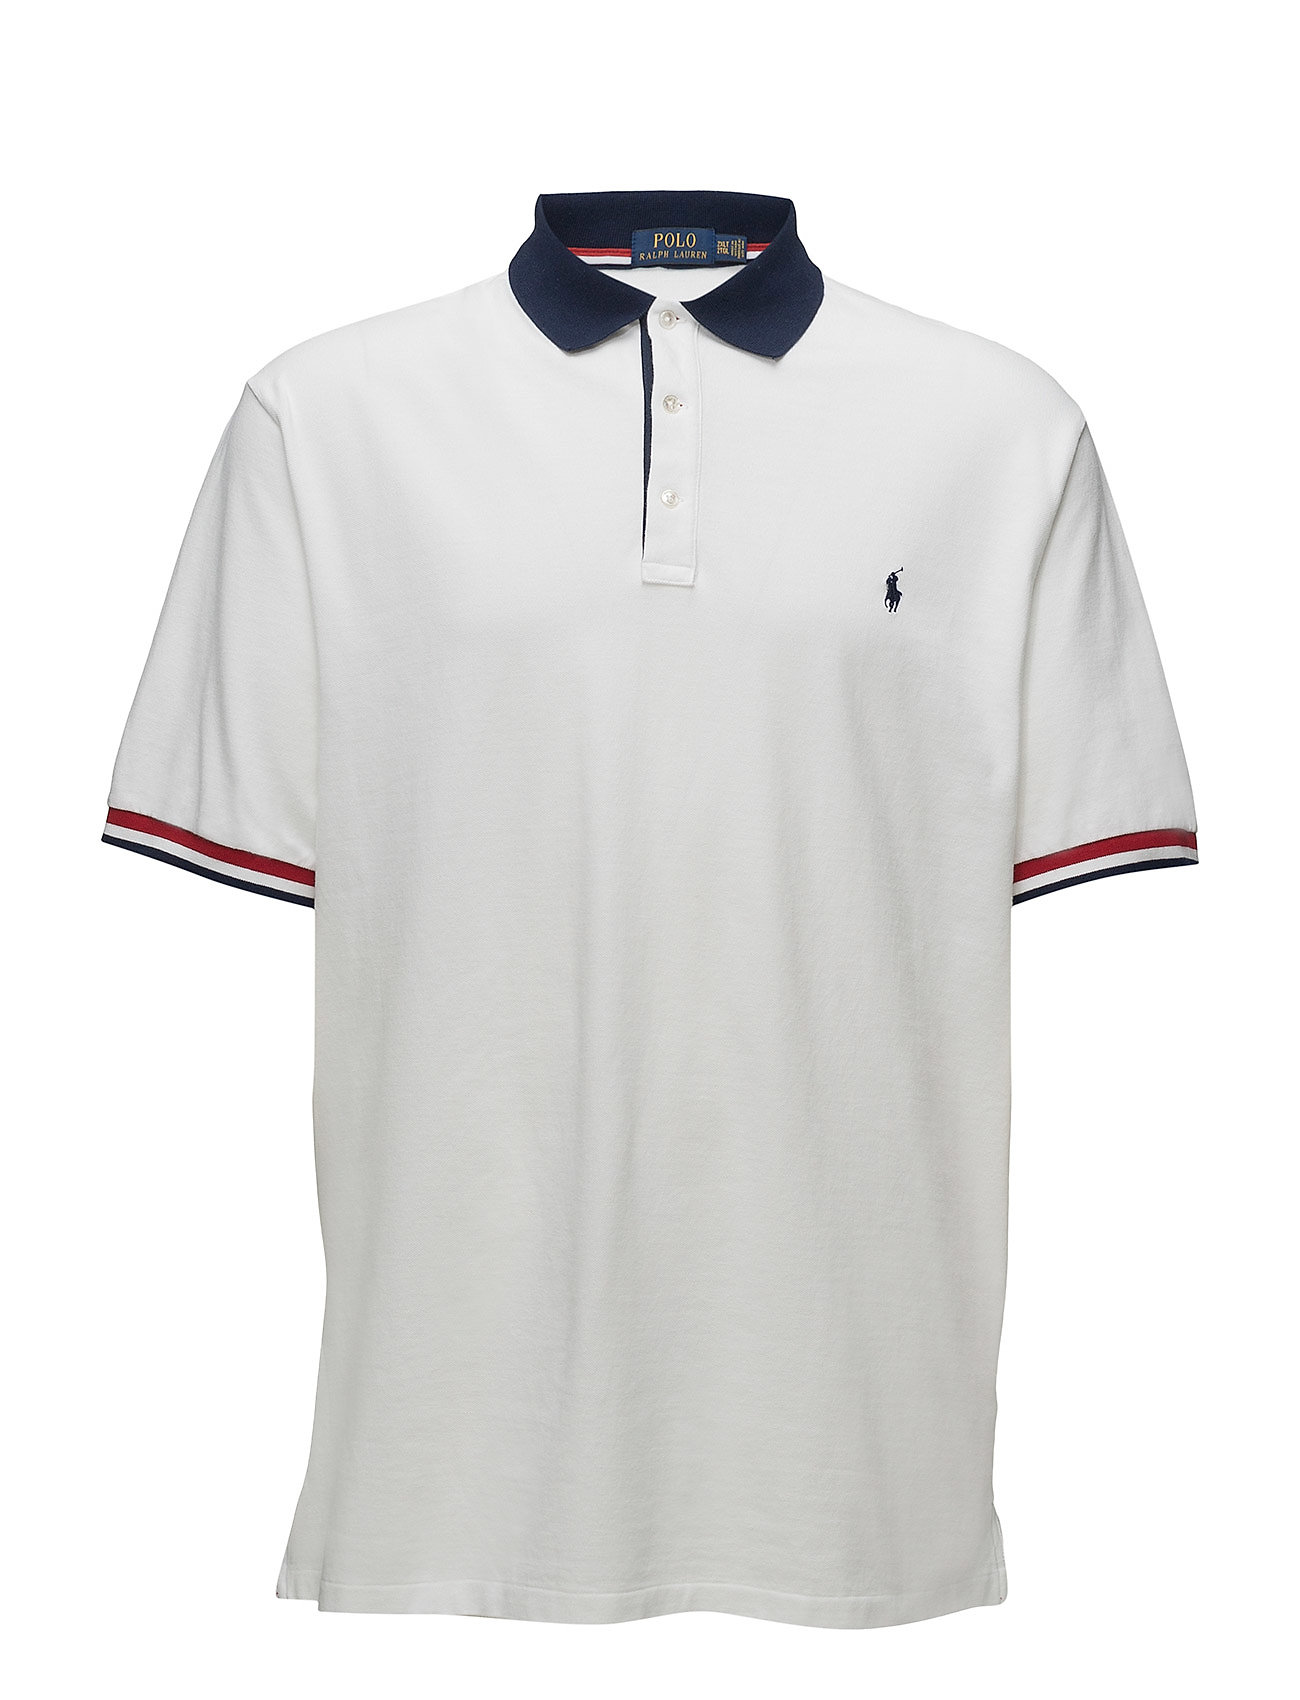 Classic Fit Mesh Polo Shirt (White) (£68.25) - Polo Ralph Lauren Big ... fd156f49eb0b